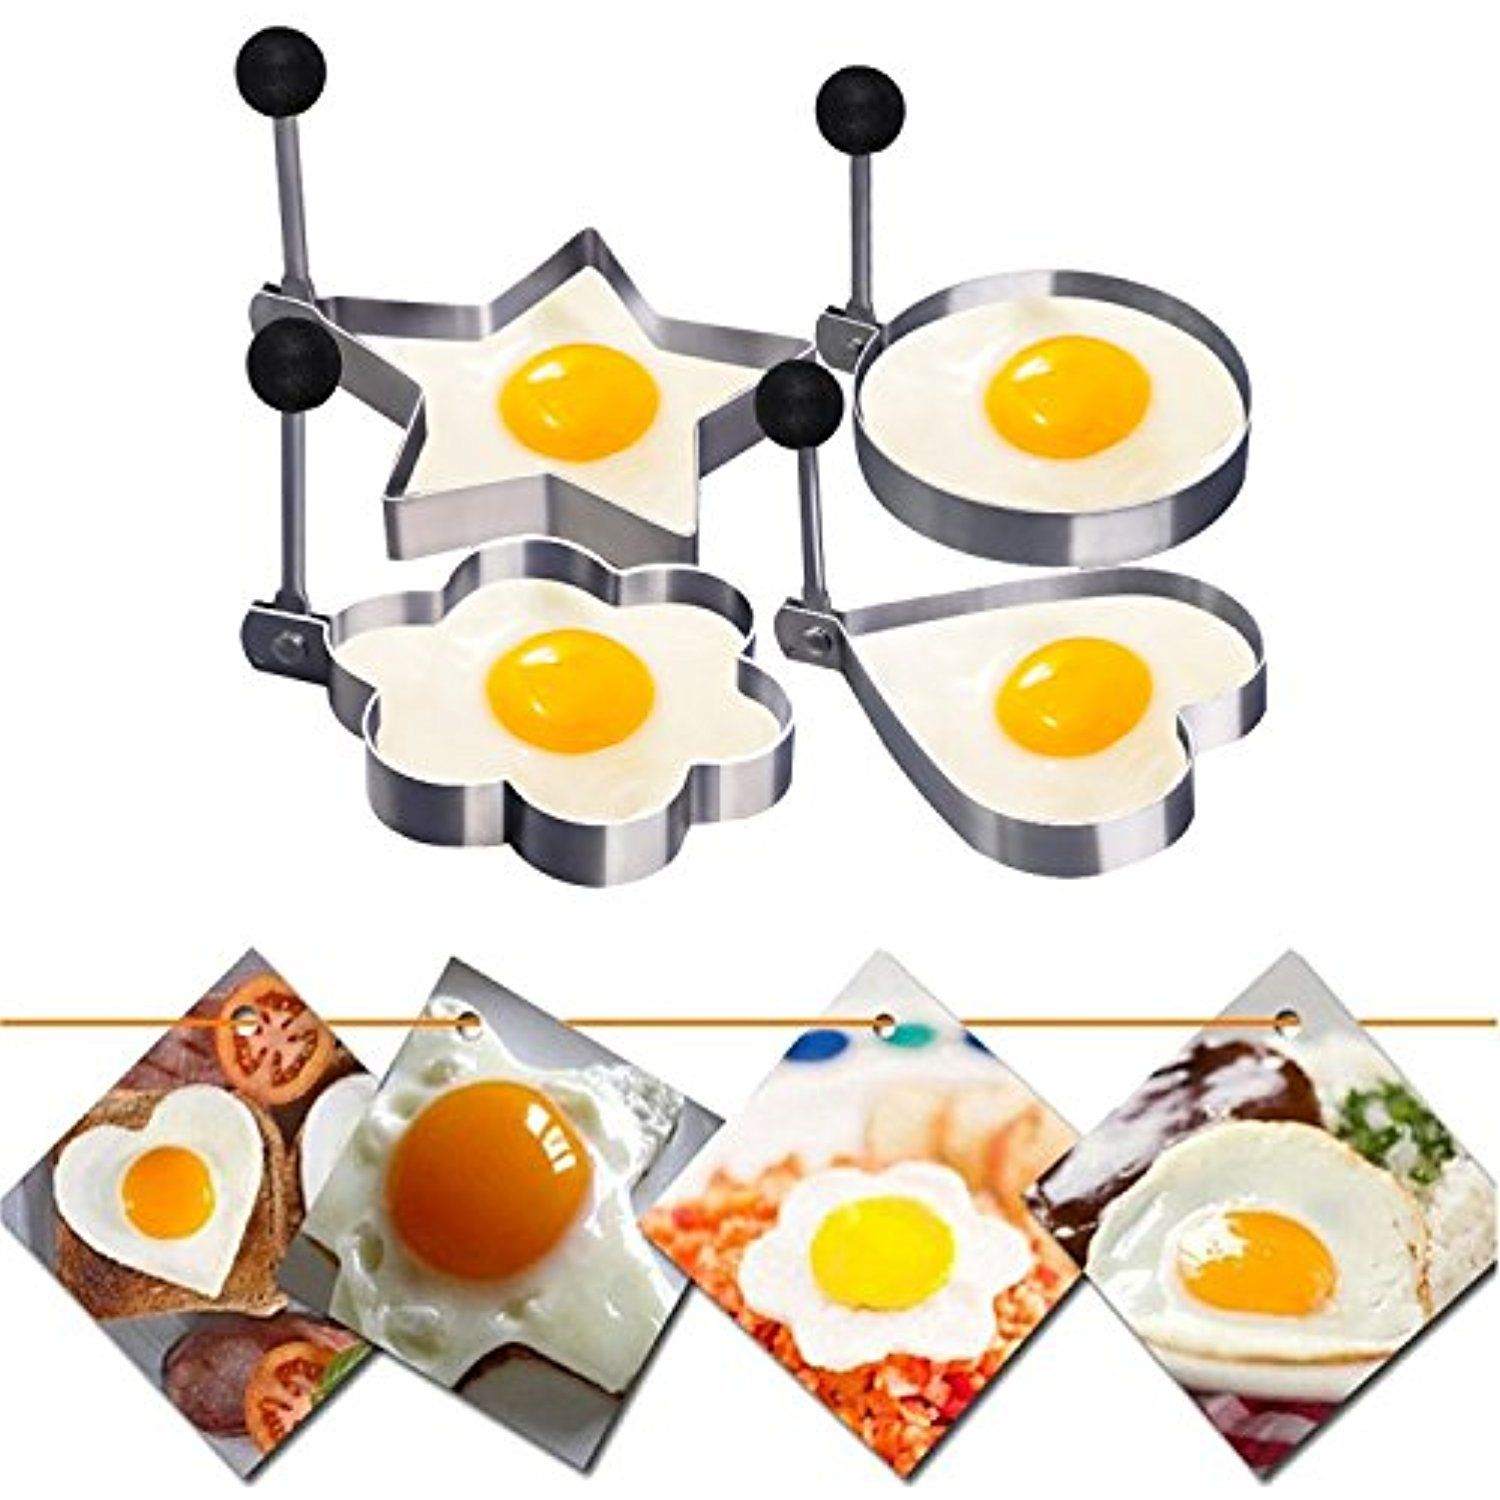 fried clipart kitchen tool